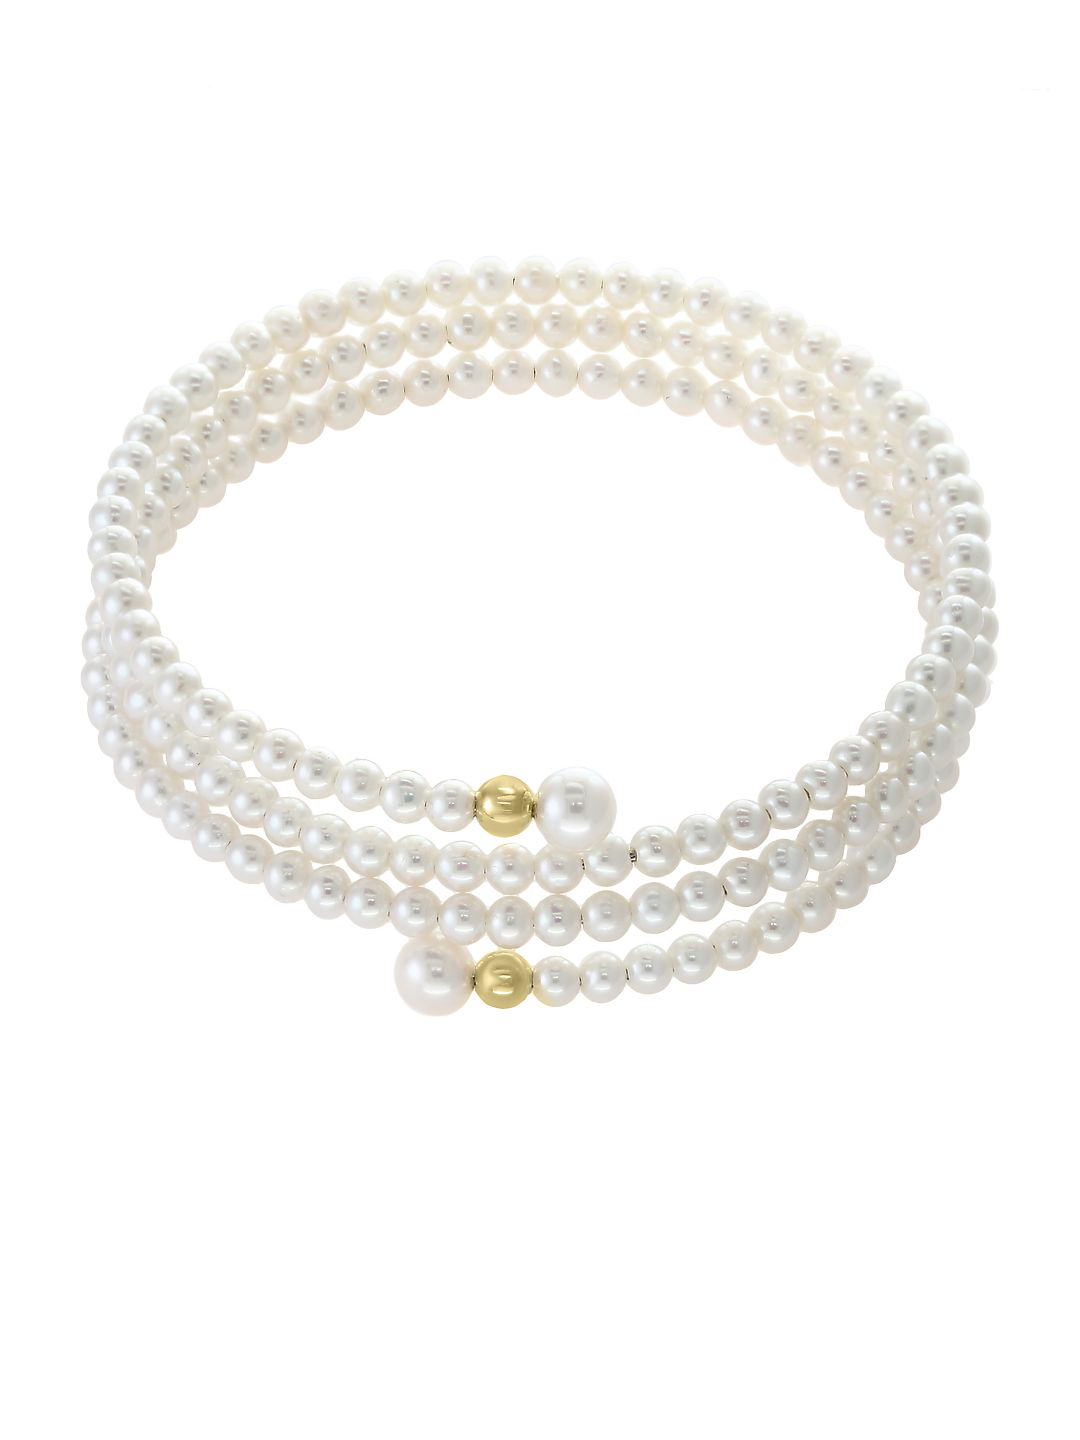 3-6MM White Pearl and 14K Yellow Gold Wrap Bracelet